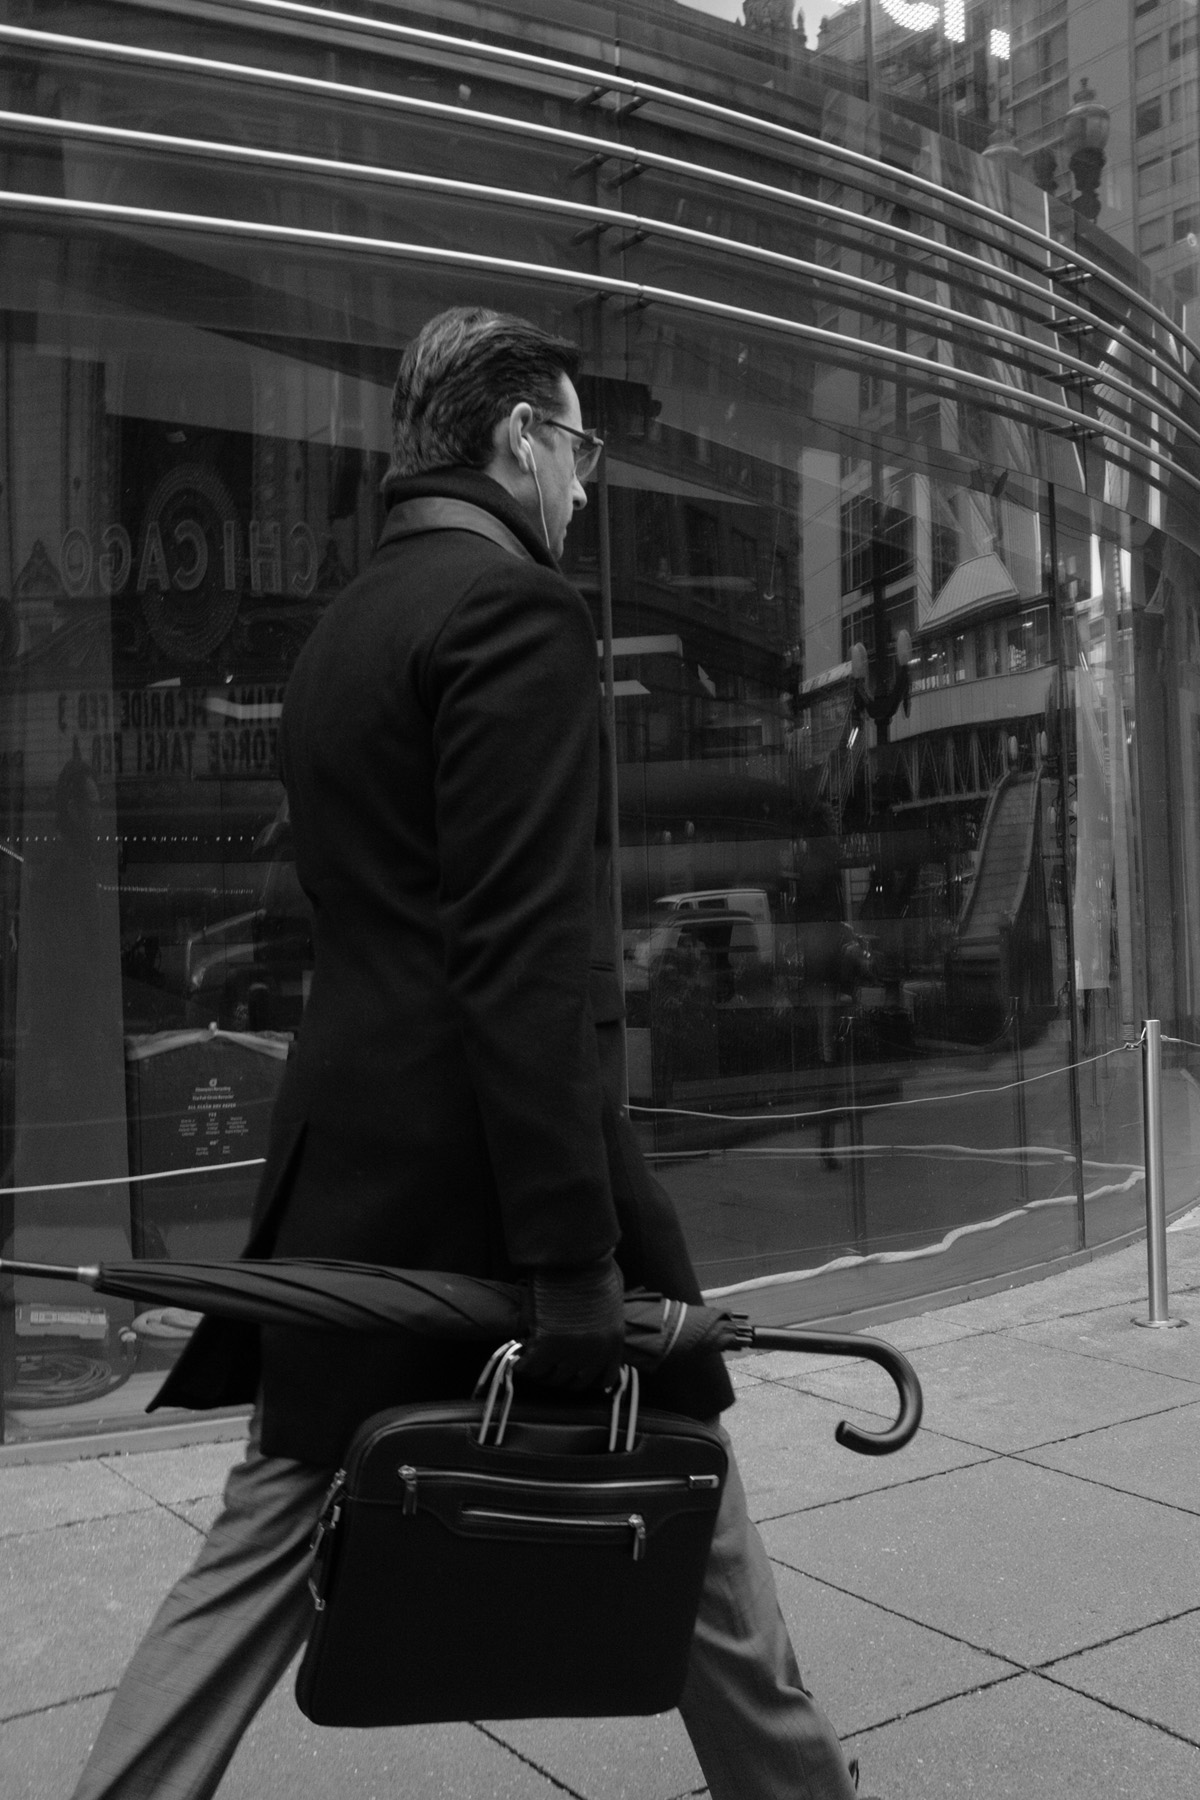 man wearing a black dress coat holding a briefcase and umbrella walking bristly to the right.